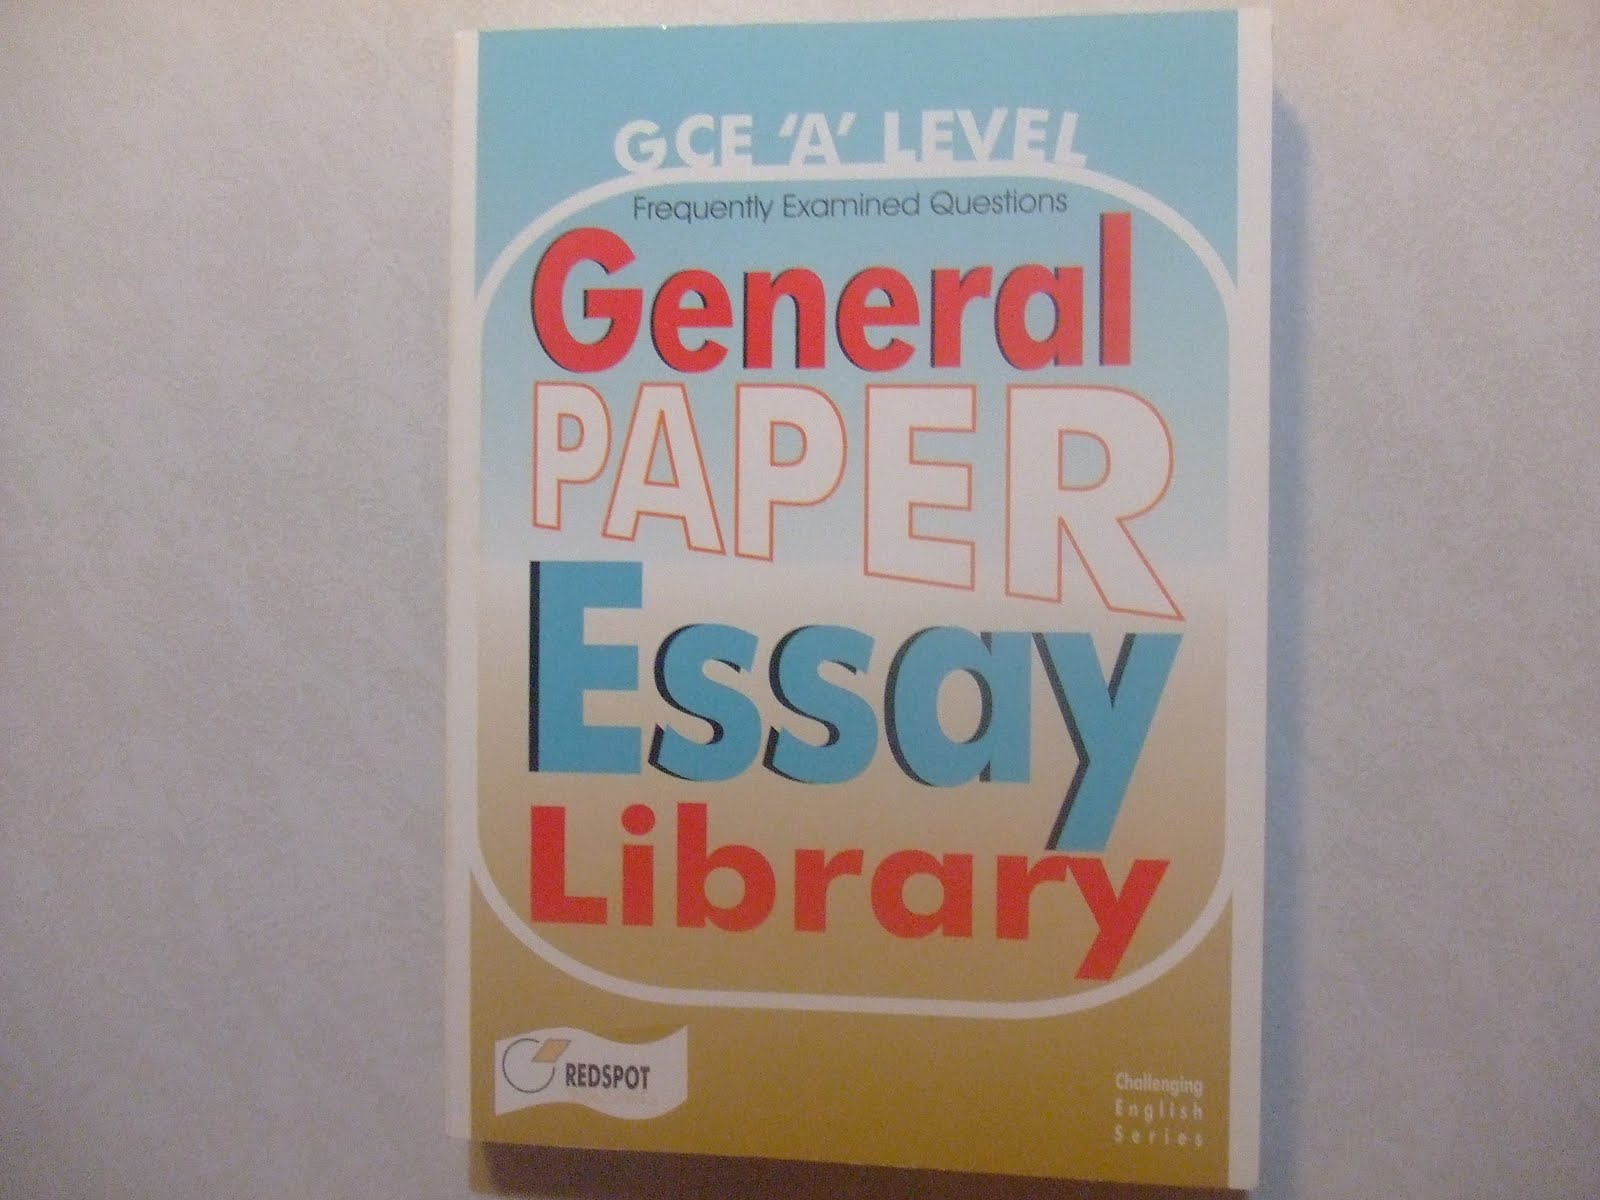 singapore textbooks general paper essay library